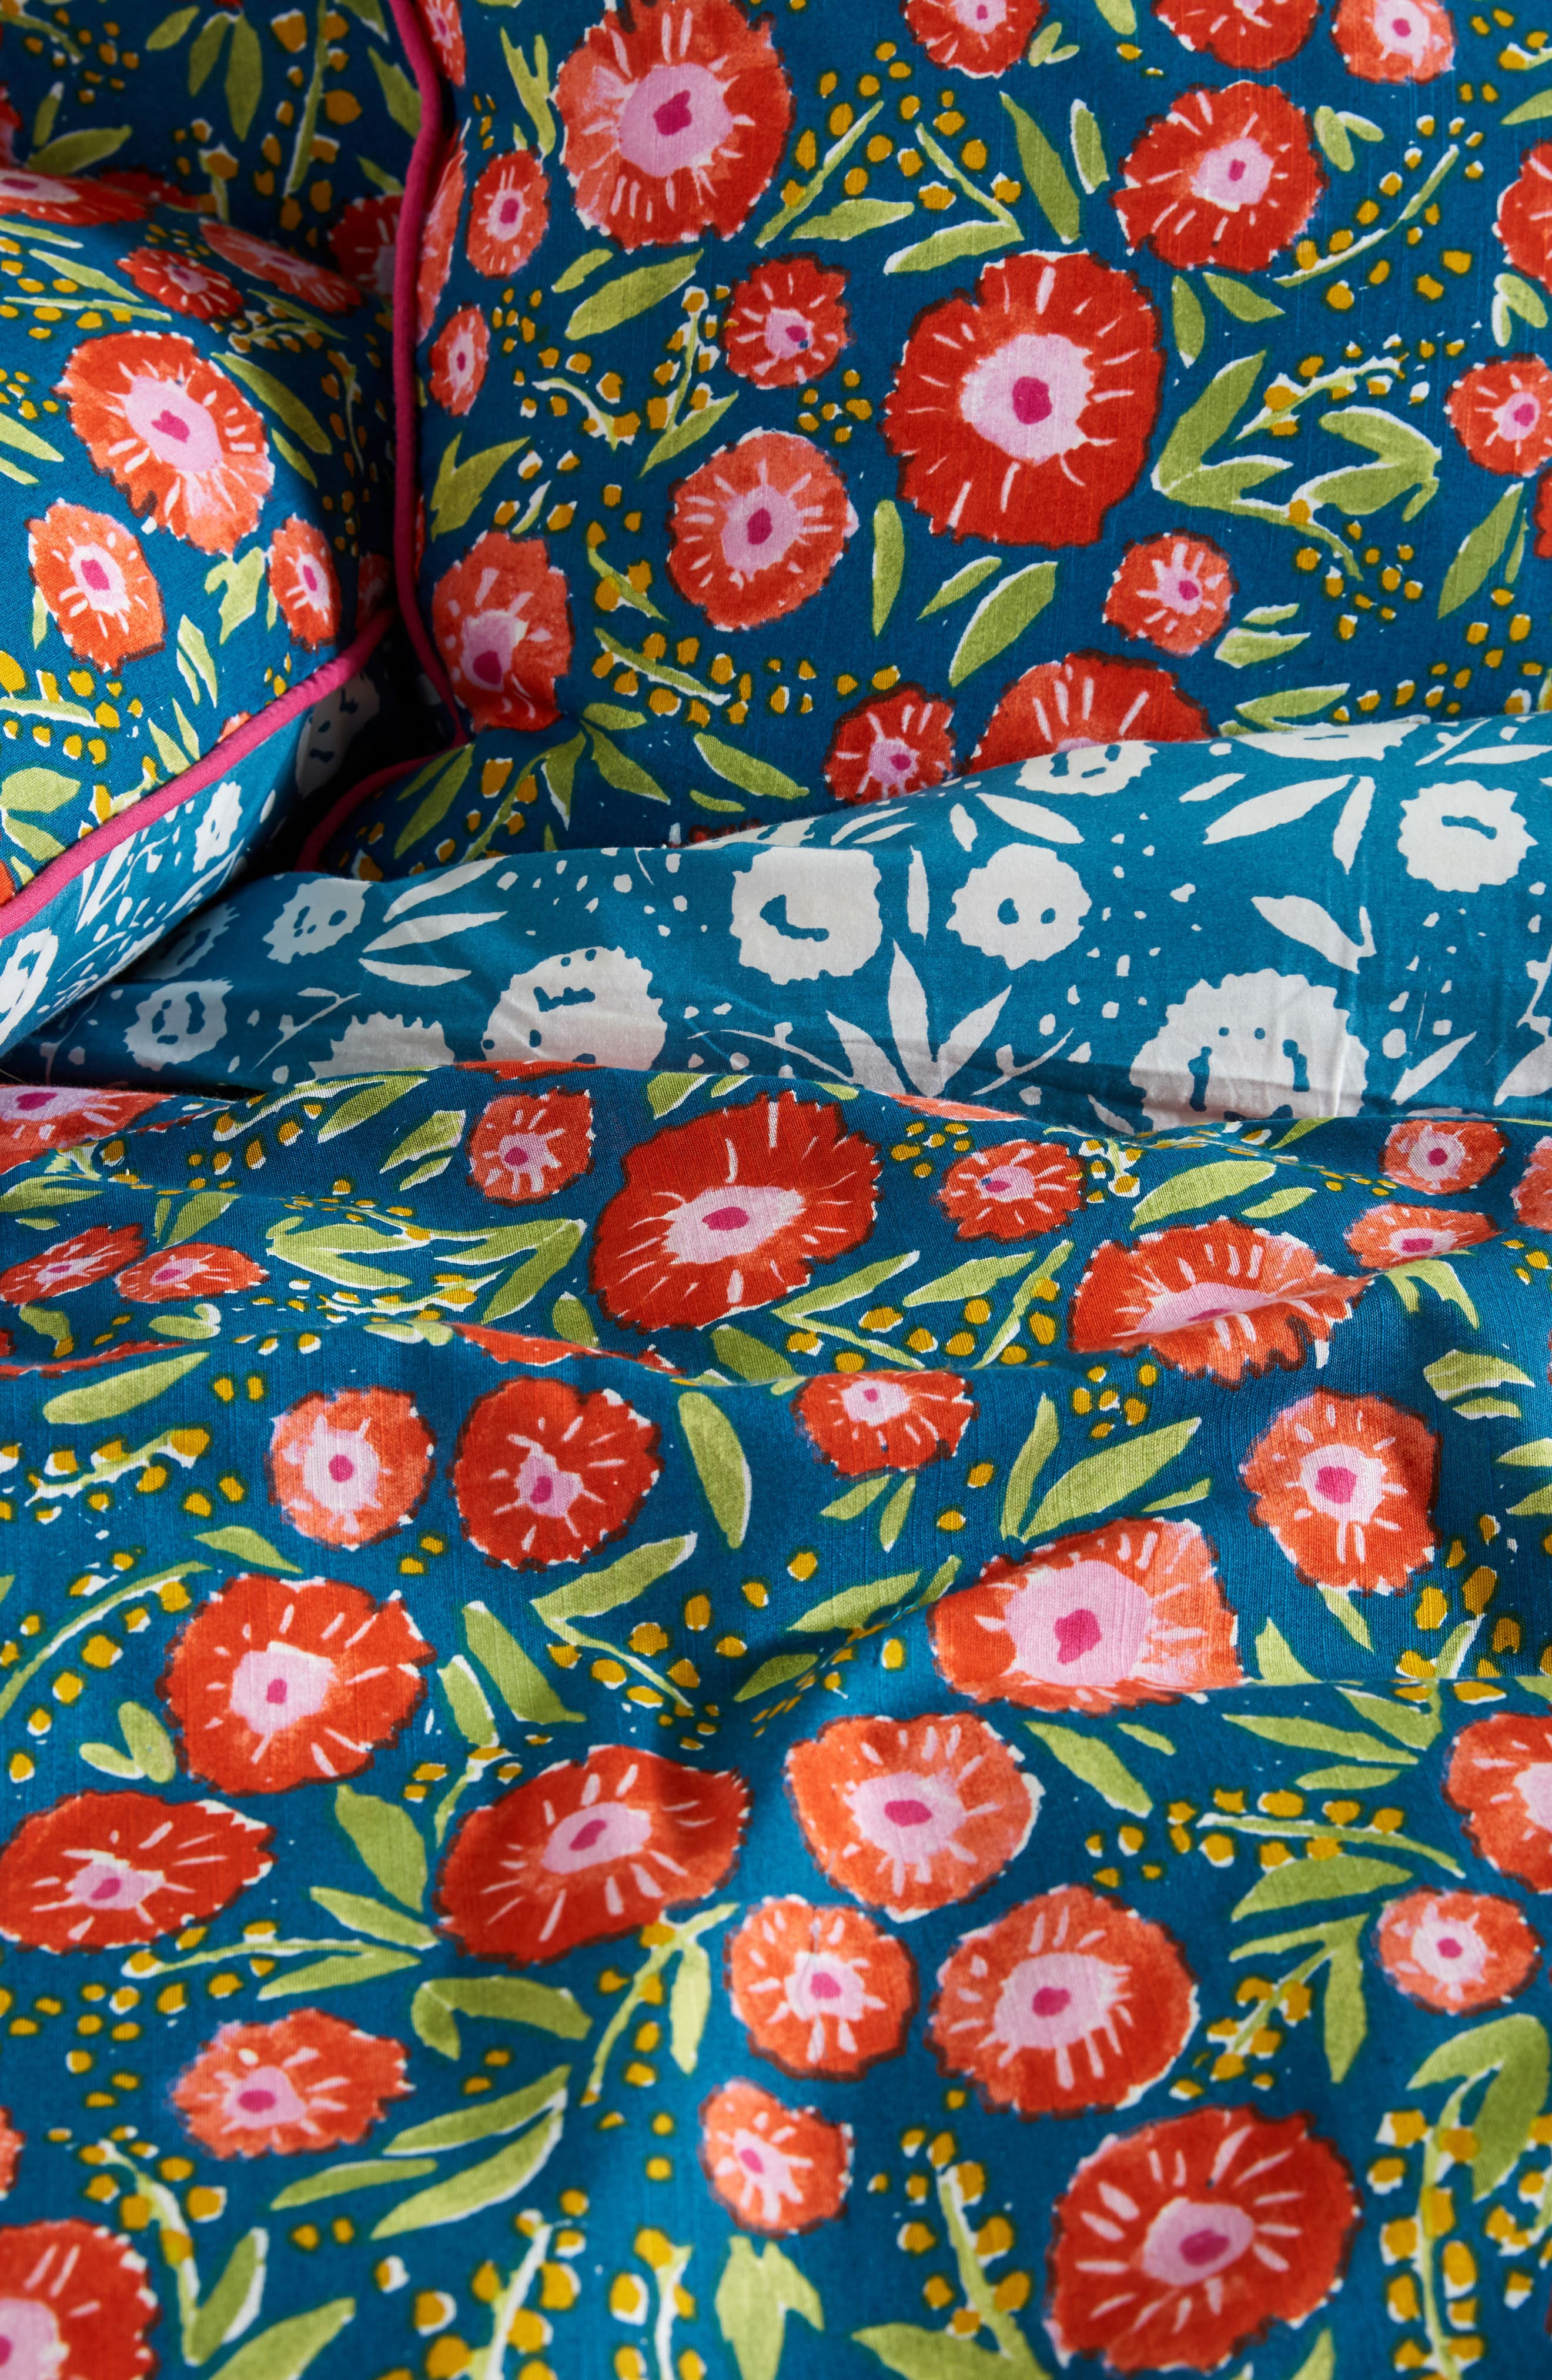 Painted Poppies Duvet Cover,                             Alternate thumbnail 2, color,                             400